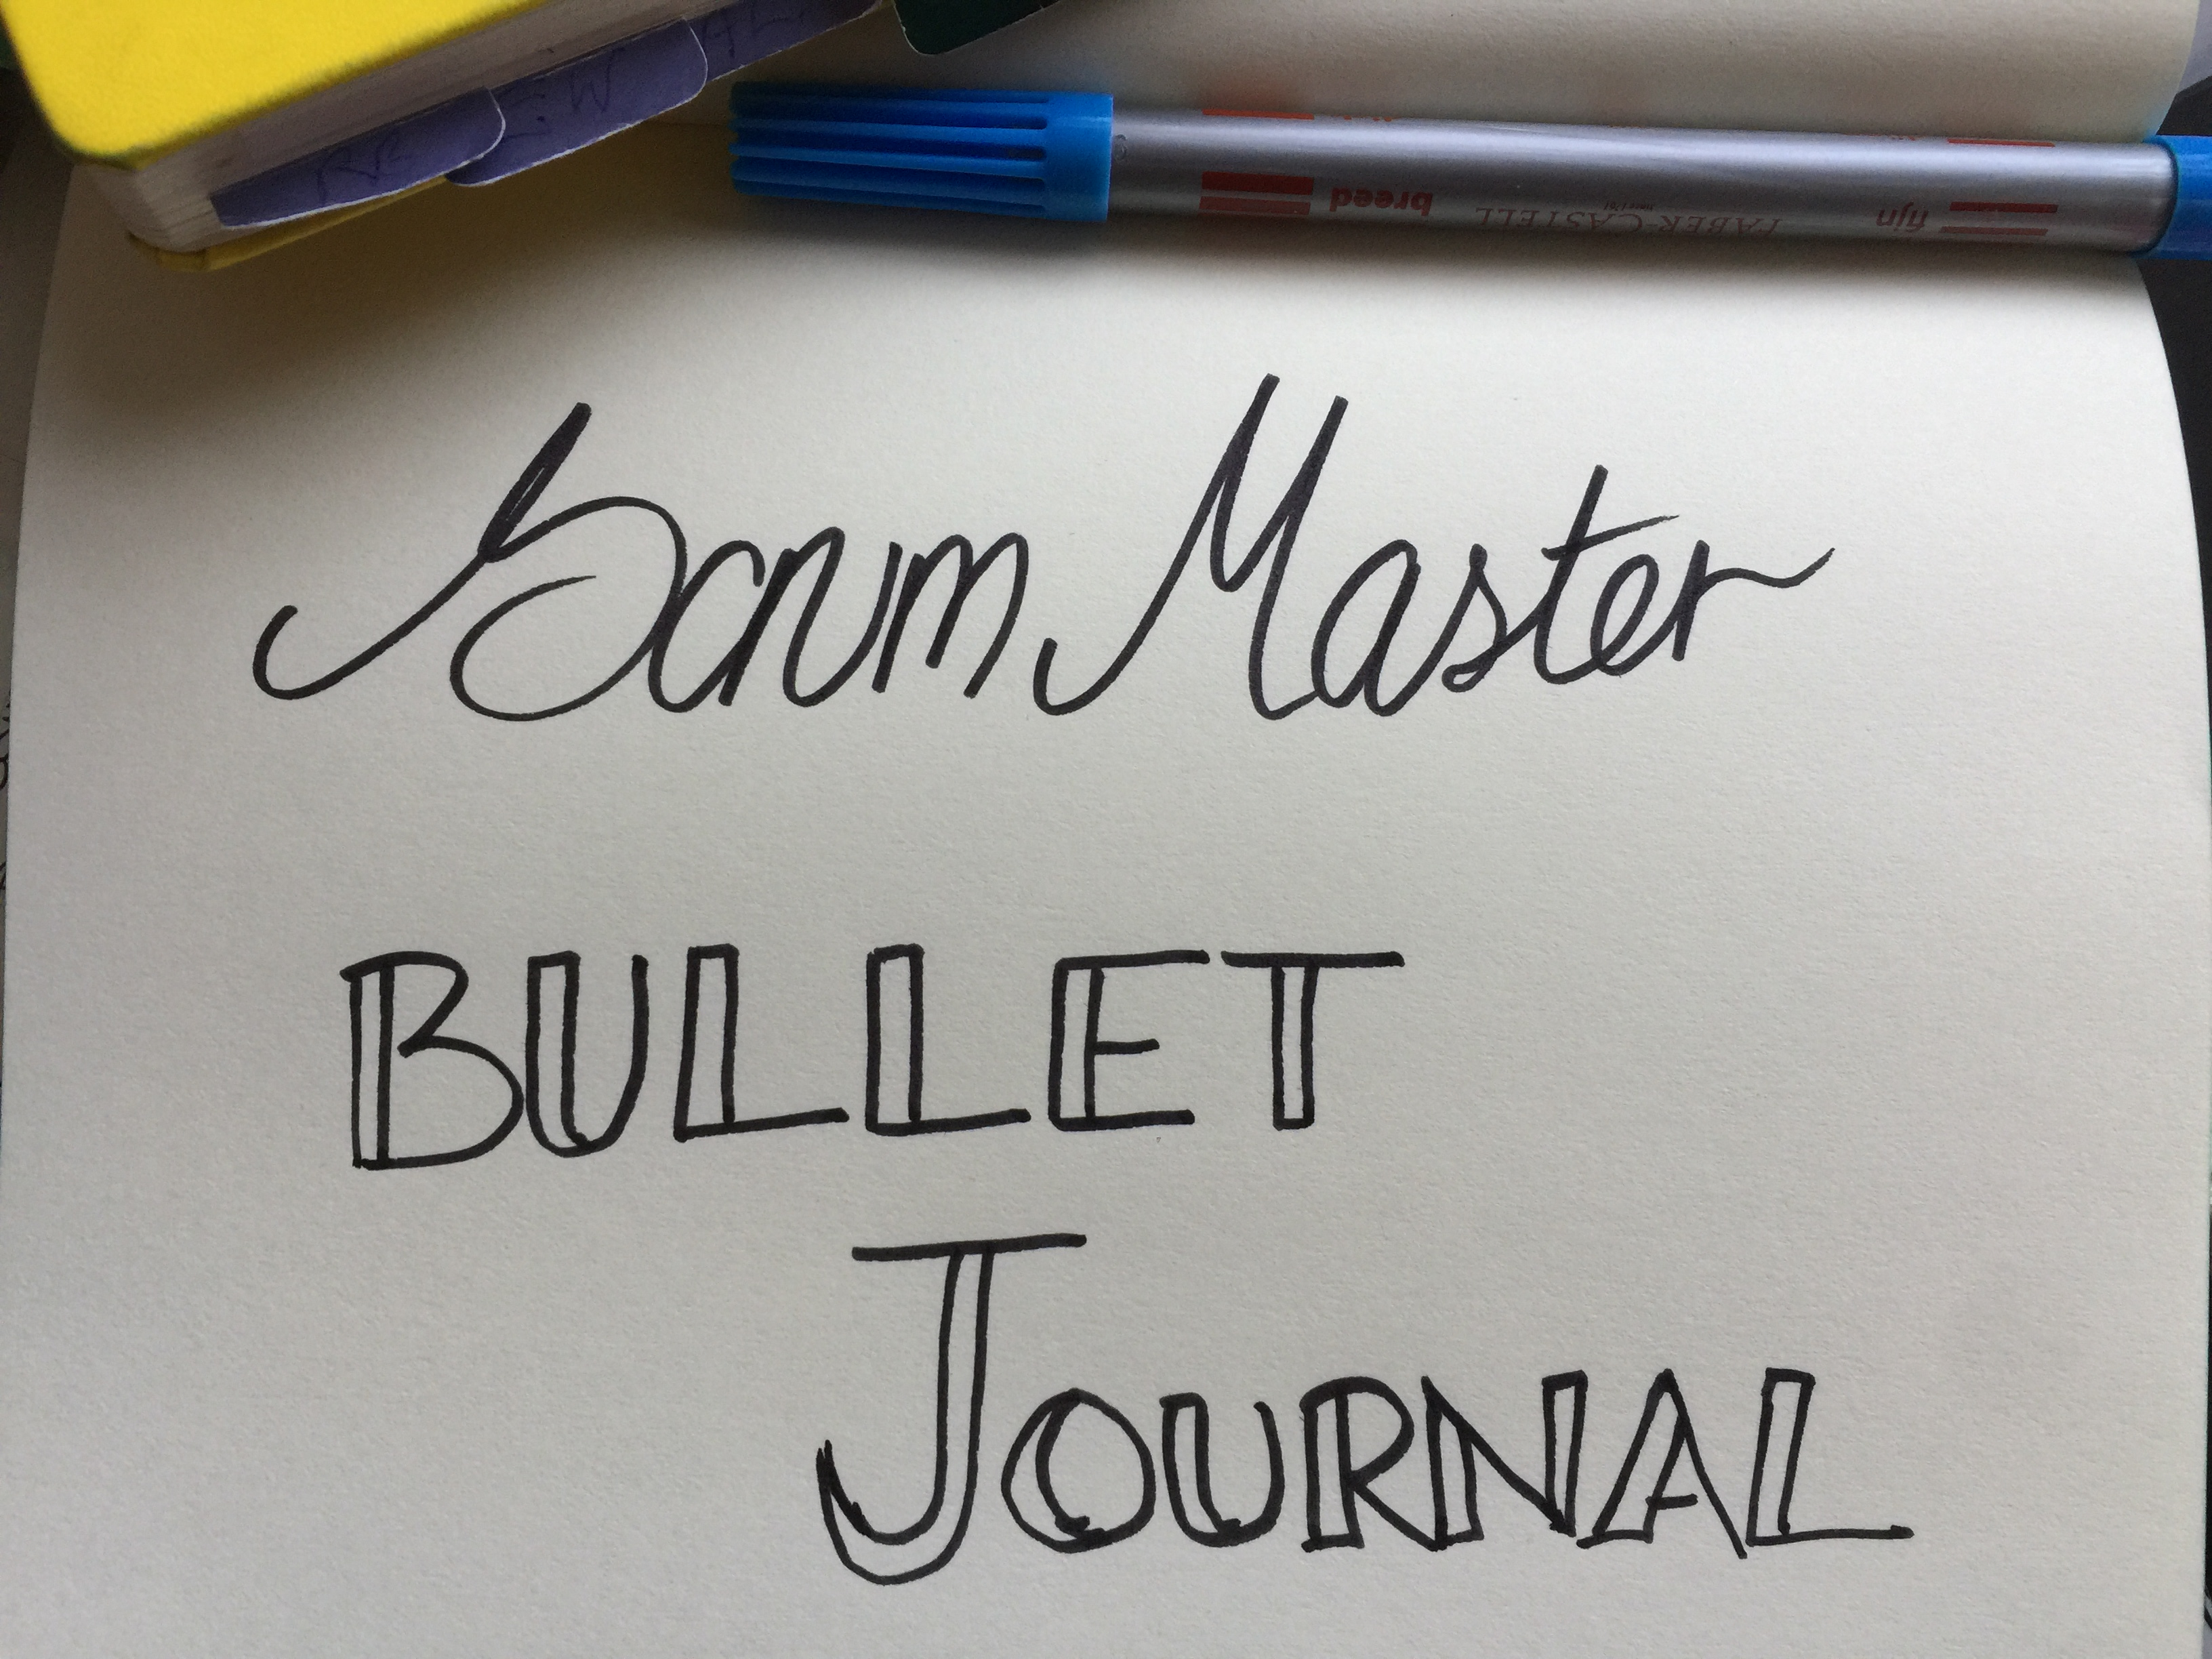 How to Use a Bullet Journal to be a Better Scrum Master